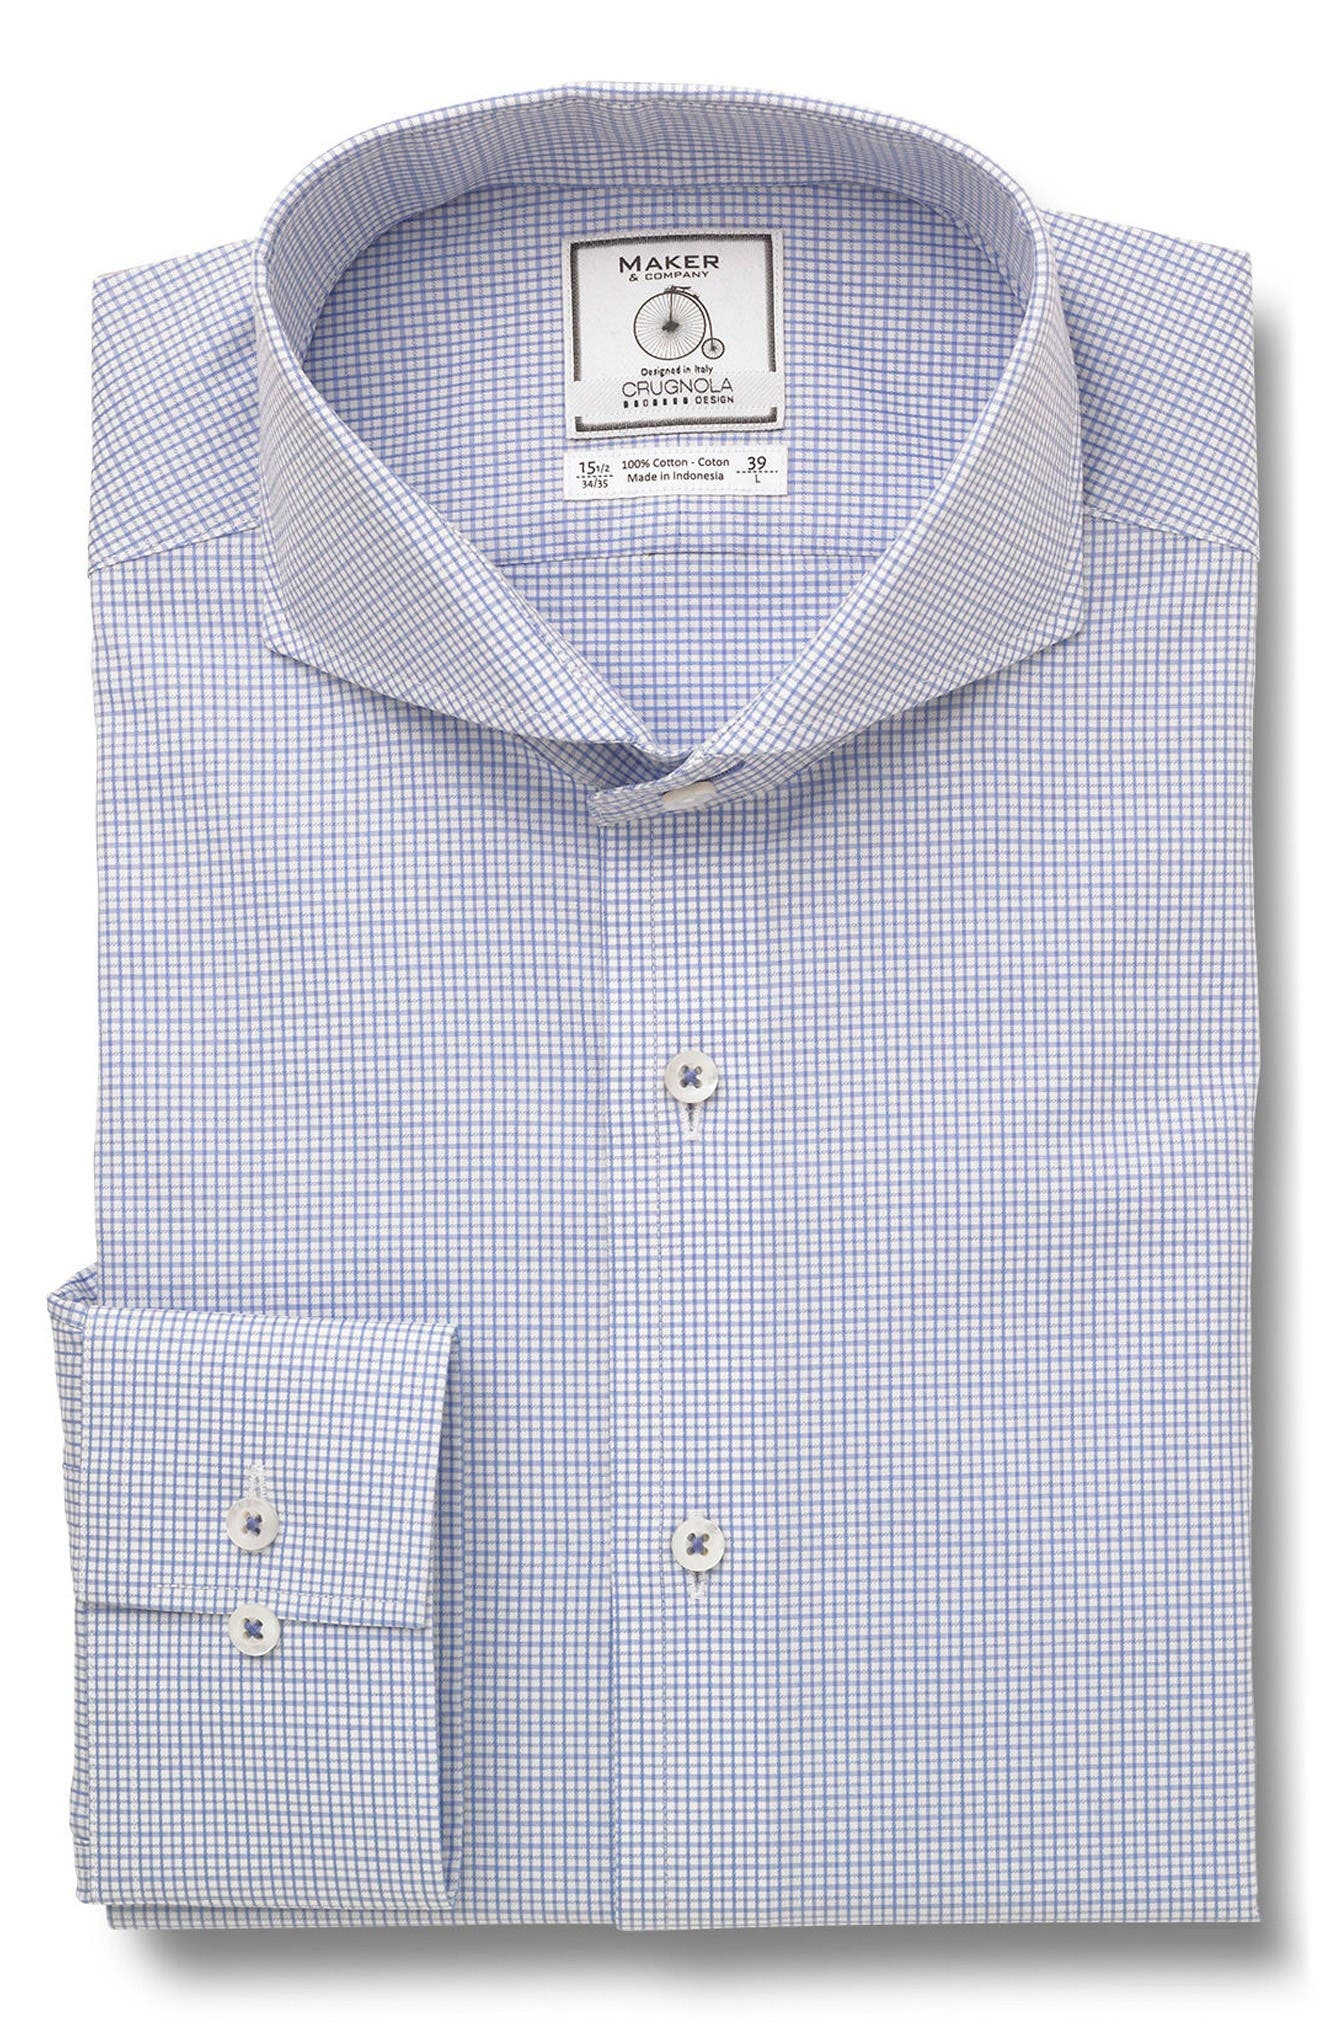 MAKER & COMPANY Trim Fit Check Dress Shirt